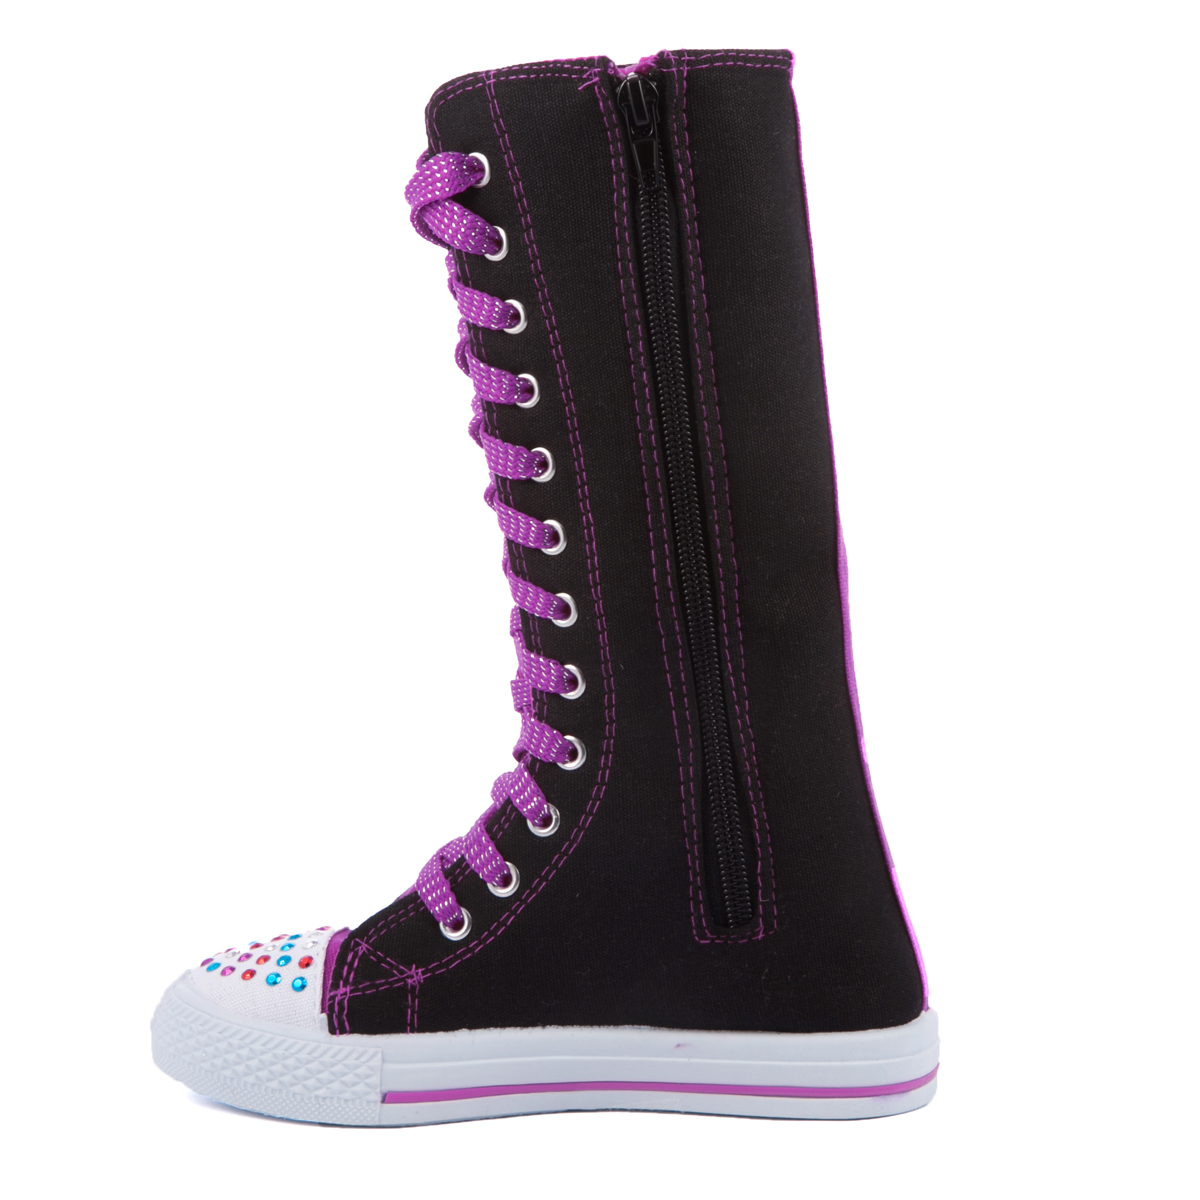 Girls' Toys. Musical Instruments. Knee-high Boots. Showing 48 of 76 results that match your query. Search Product Result. Product - Brinley Co. Women's Tall Buckle Detail Boots. Product - Brinley Co. Women's Extra Wide Calf Ankle Strap Knee-high Riding Boots. Product Image. Price $